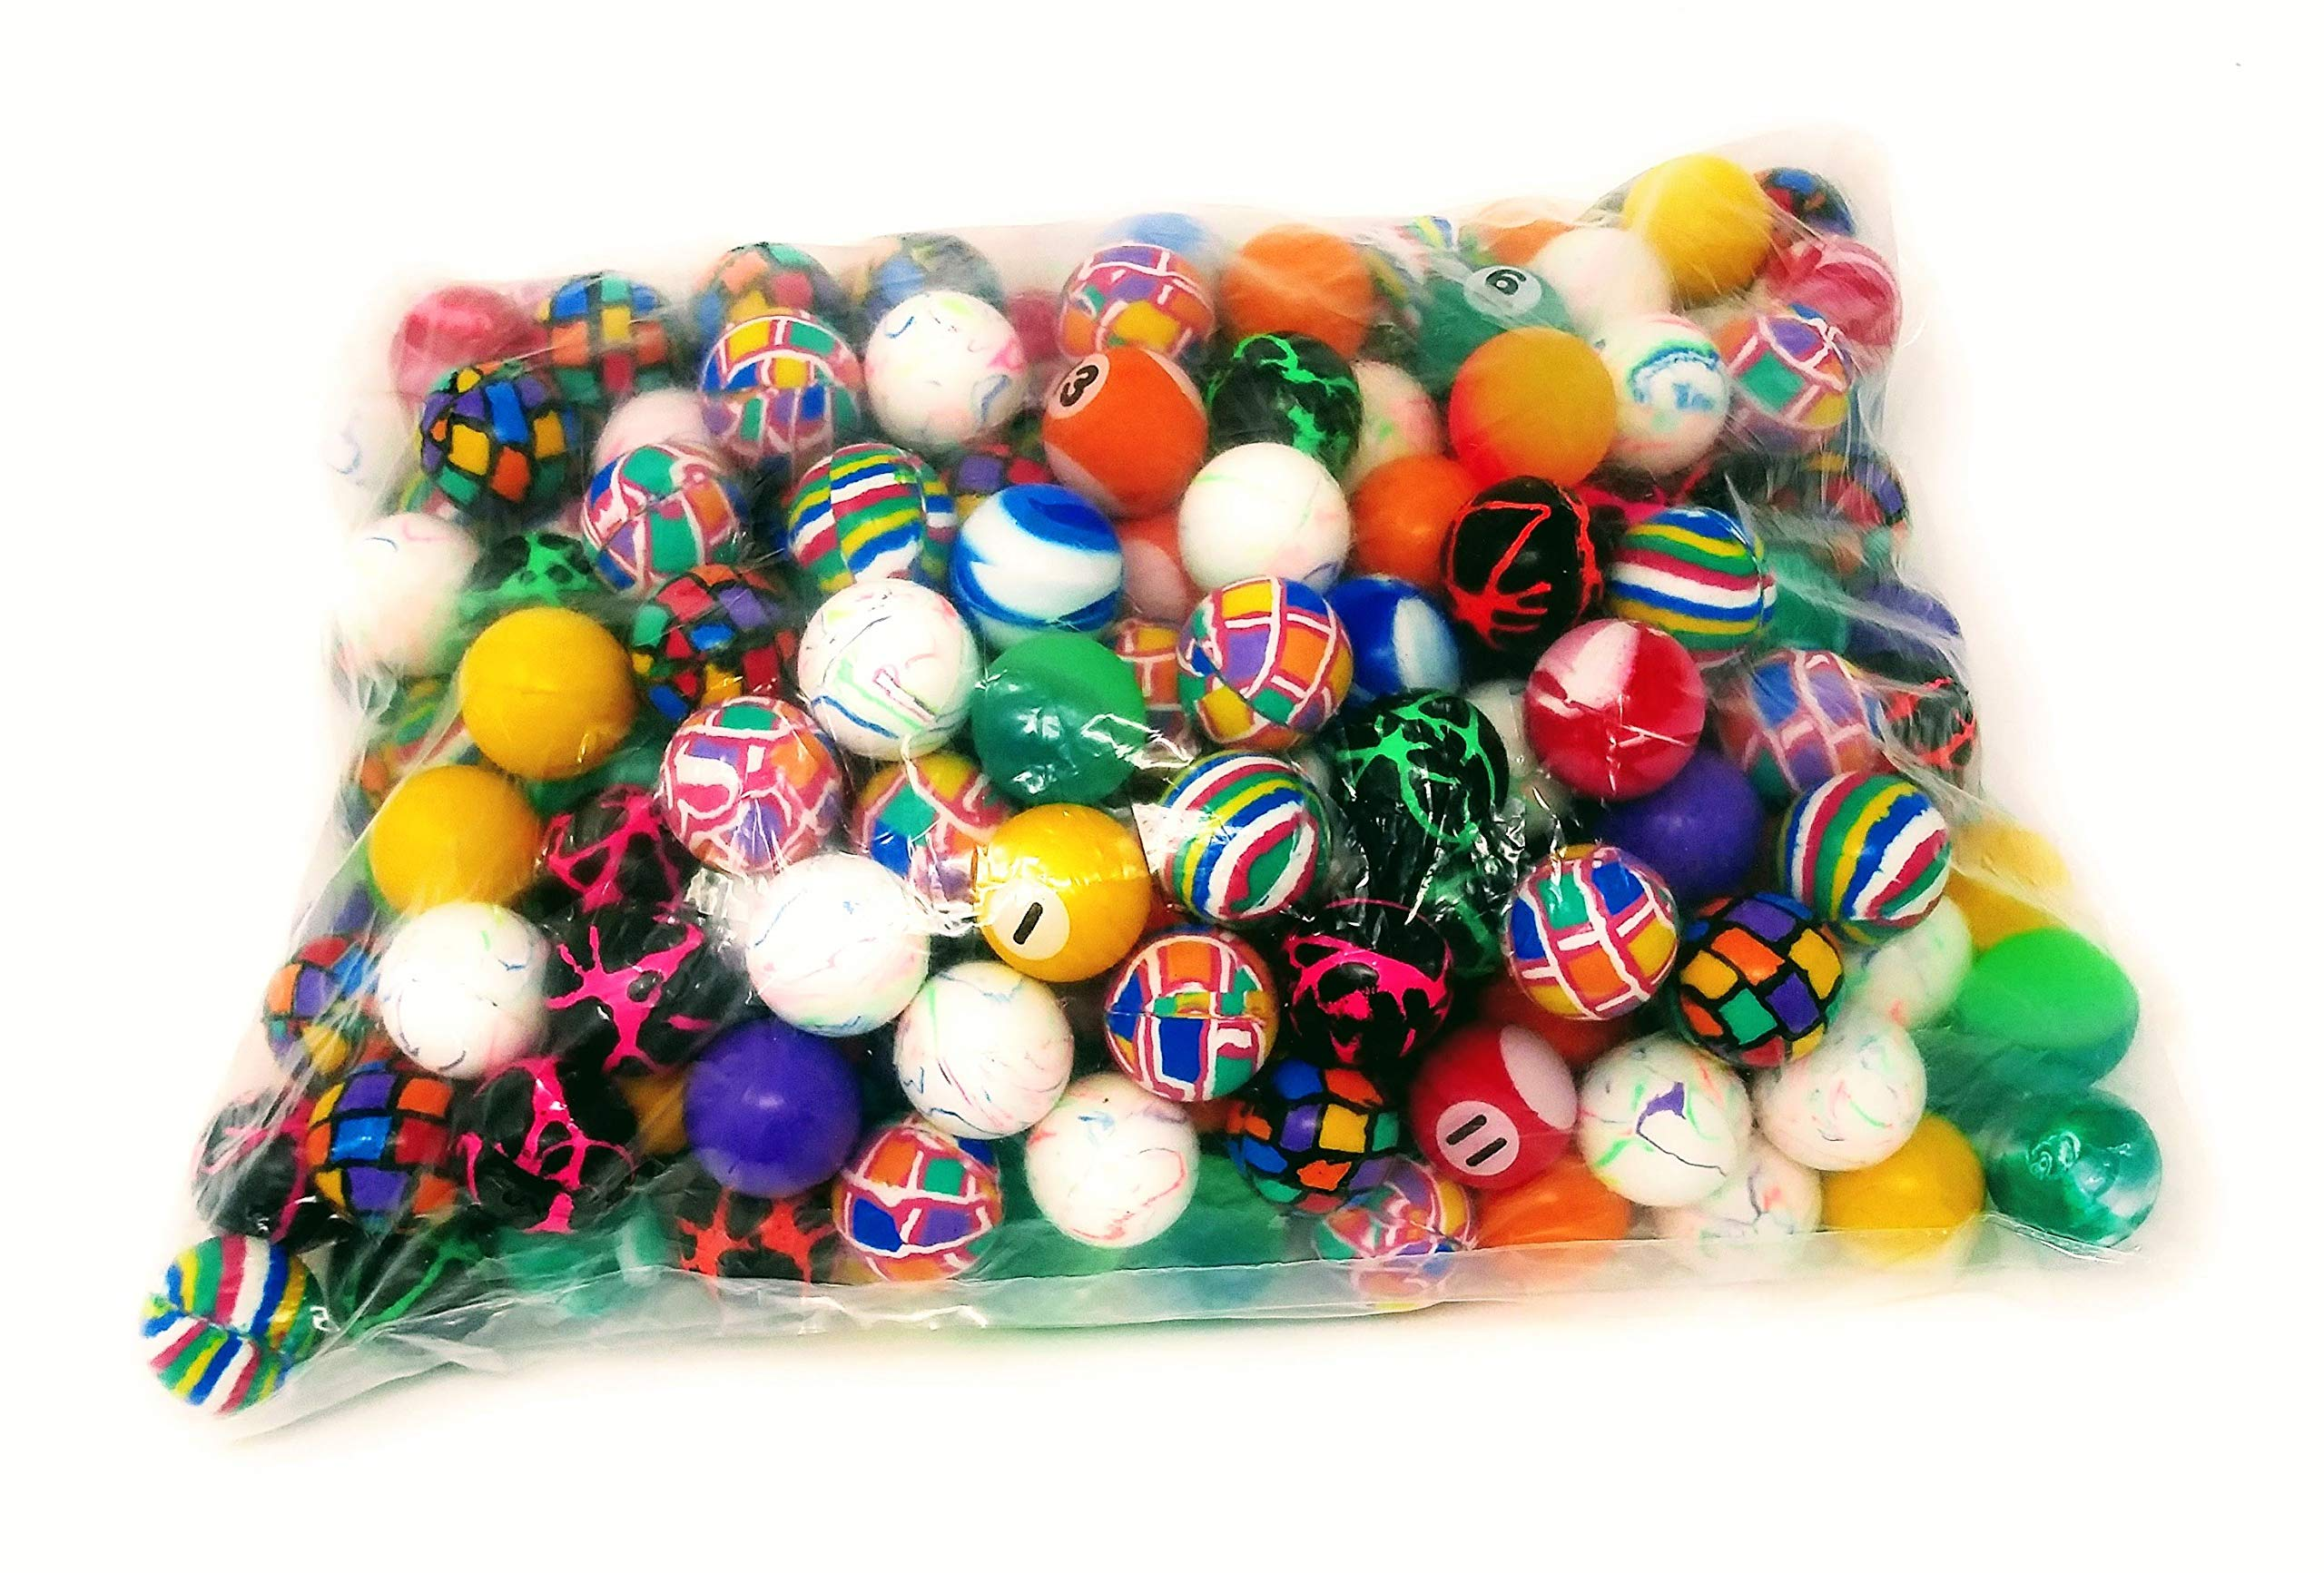 4E's Novelty Mega Bulk Assortment of 250 Bouncy Super Balls Mix for Kids, High Bouncing Swirl Rubber Balls, Great Bounce Party Favor Toys, Carnival Fun Prizes, for Boys and Girls 1'' by 4E's Novelty (Image #4)